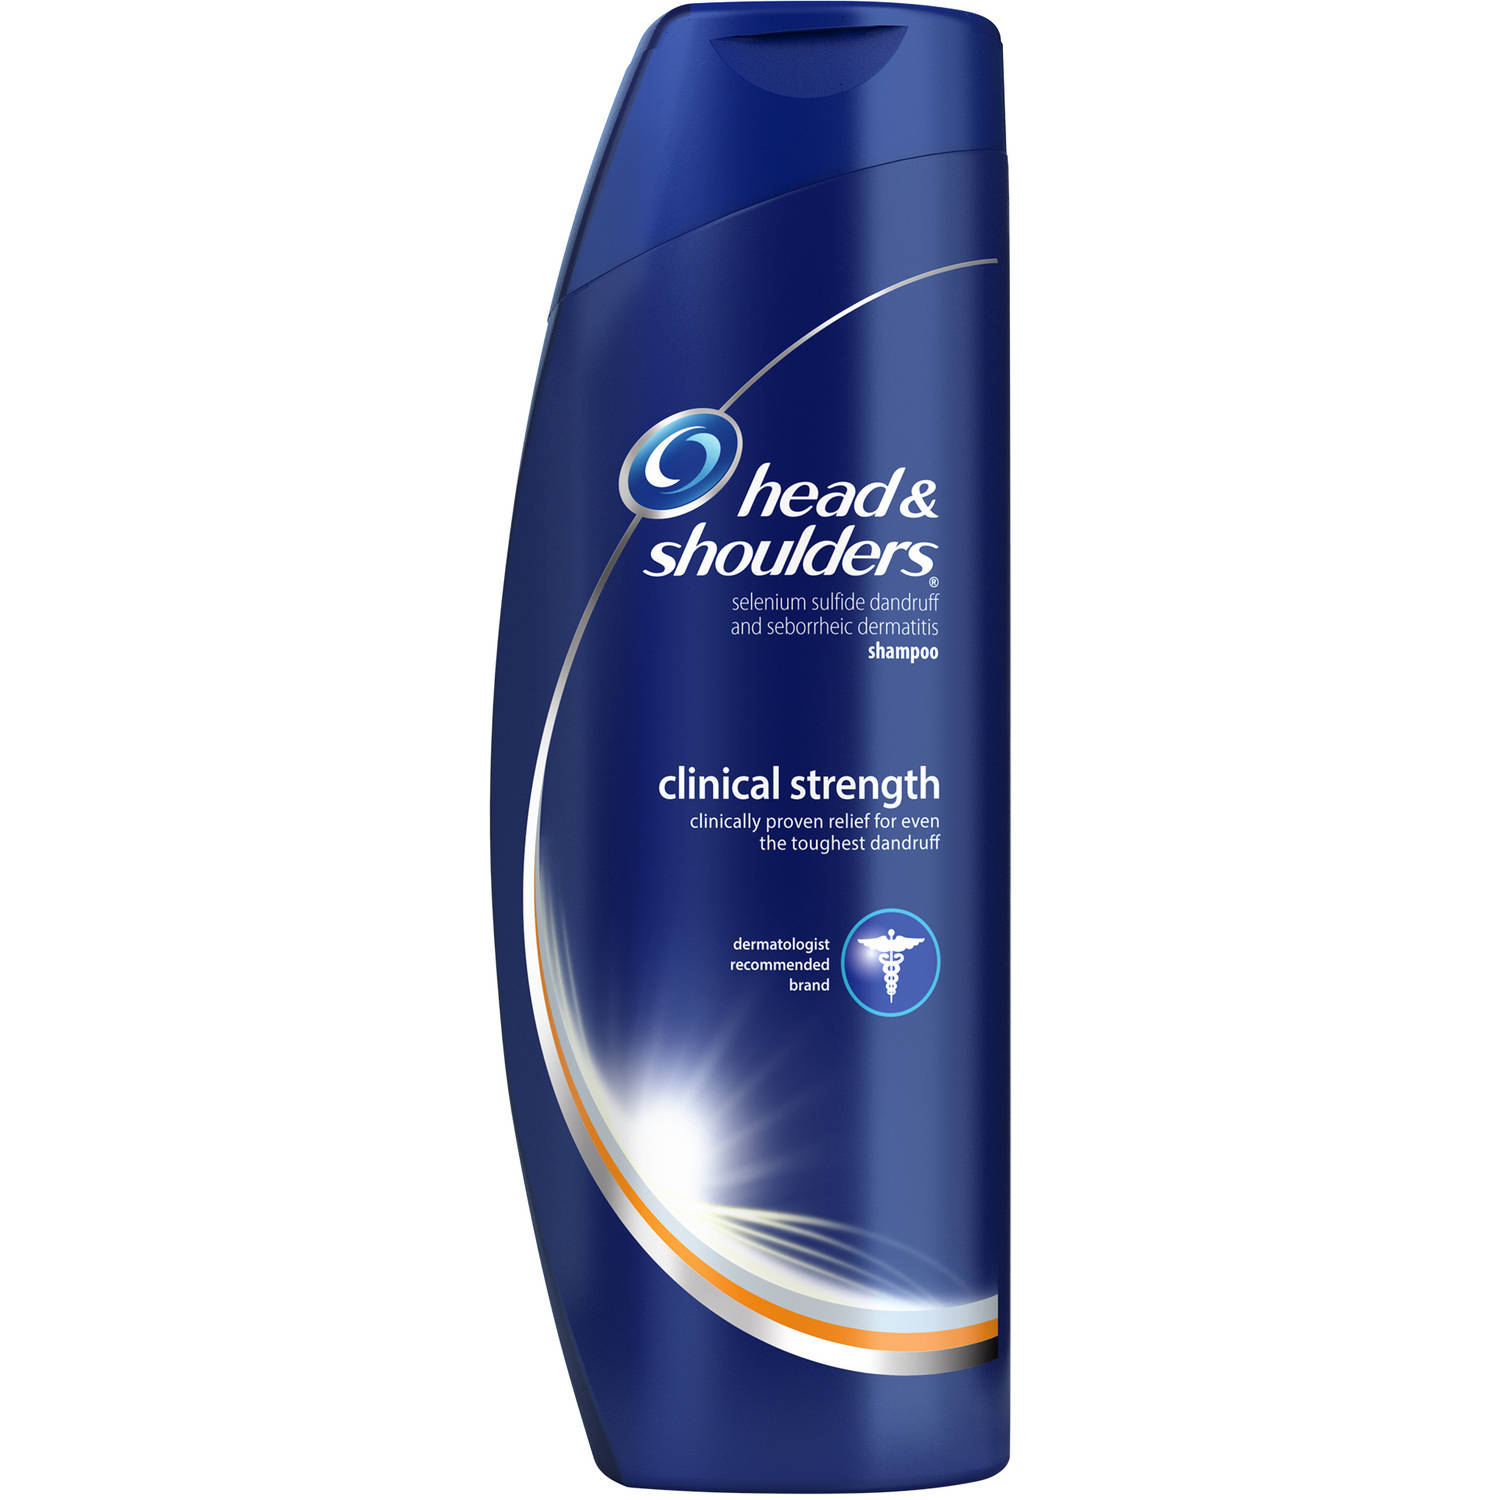 Head & Shoulders Clinical Strength Dandruff Shampoo, 13.5 fl oz